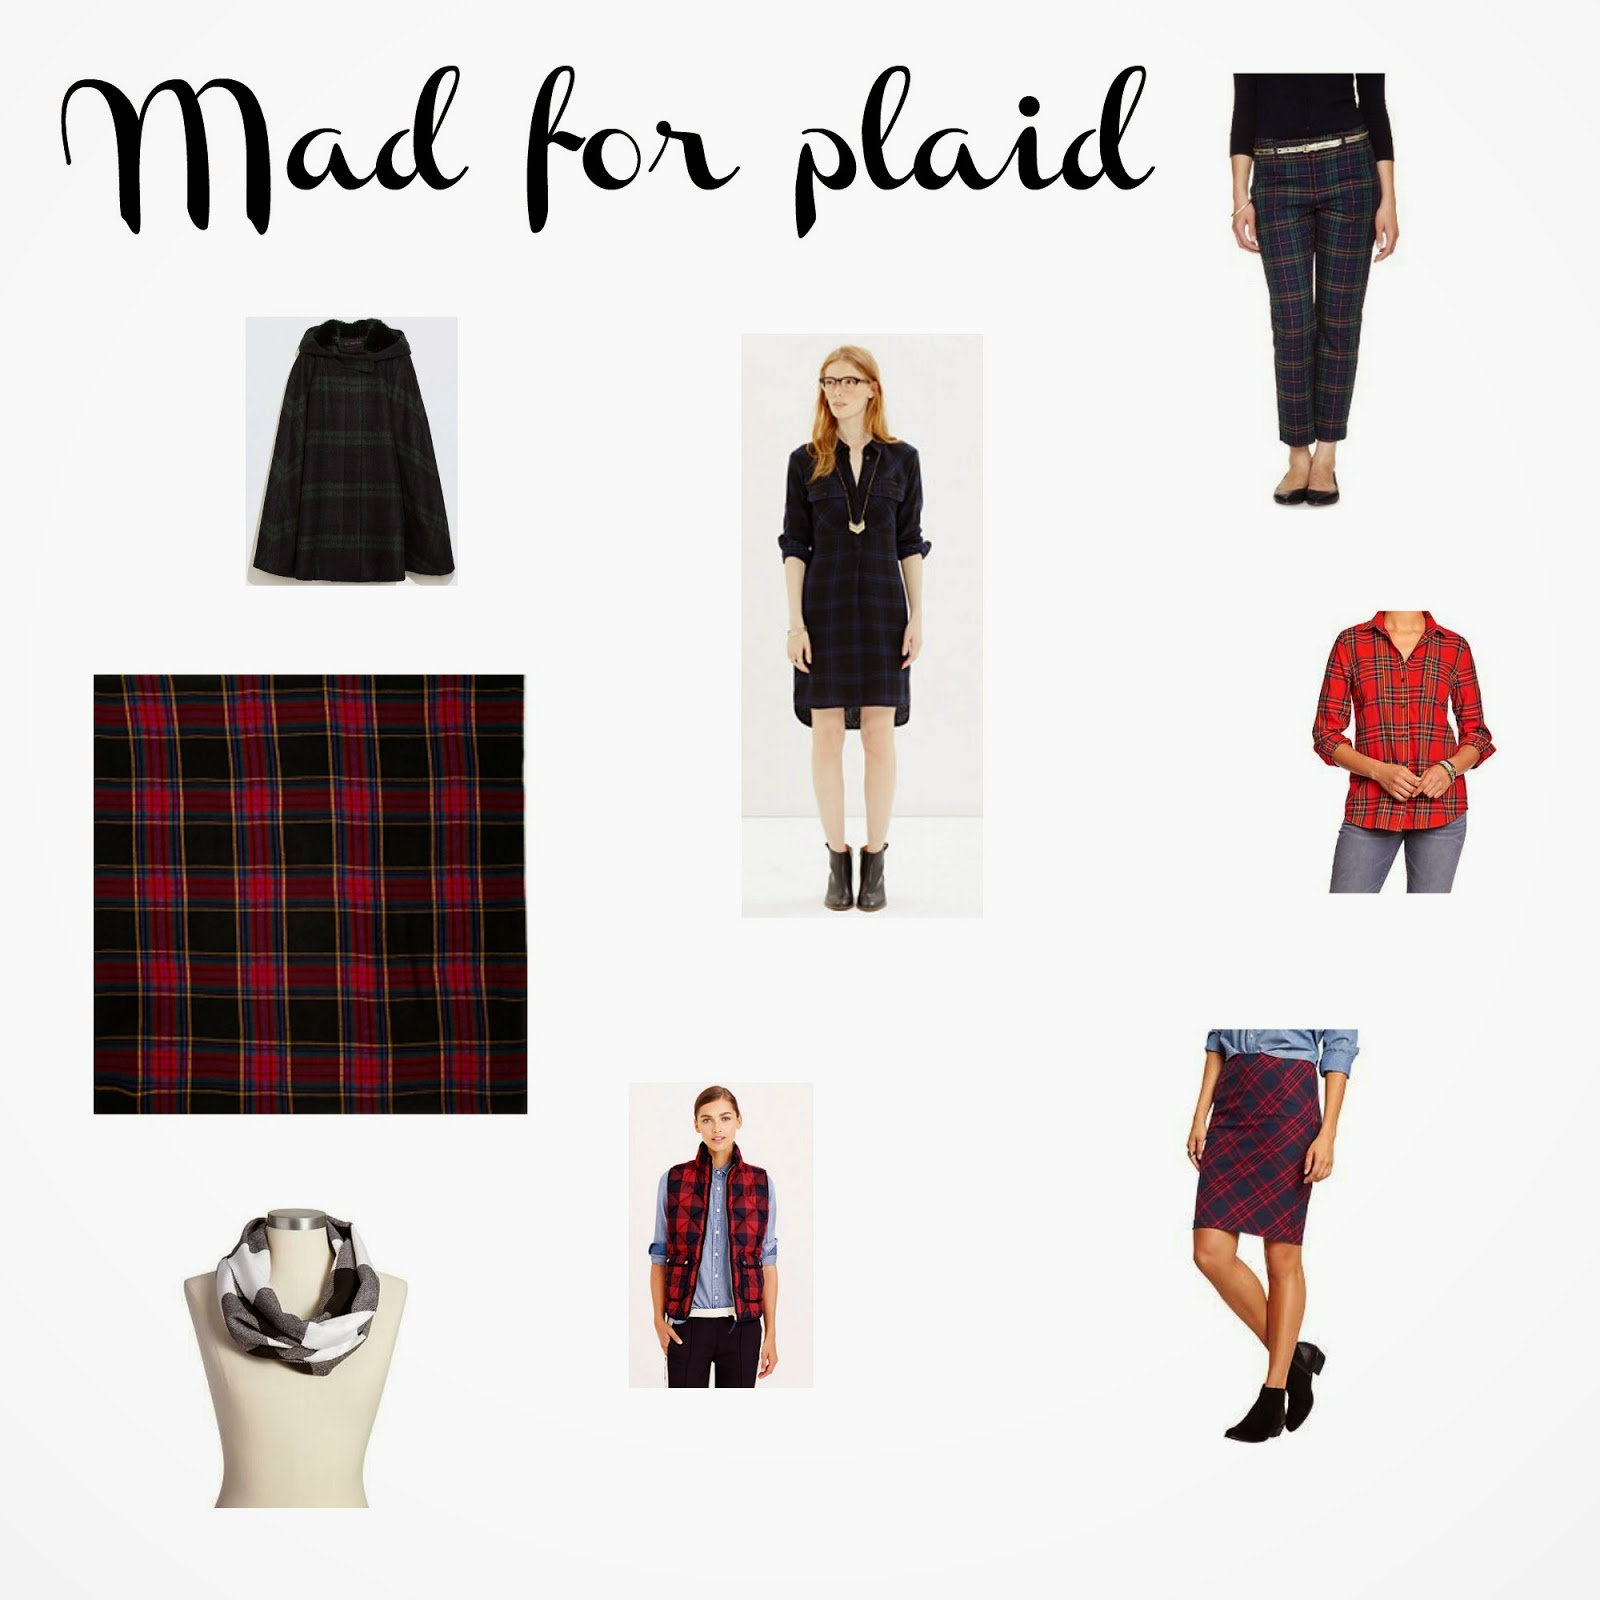 It's a Plaid World